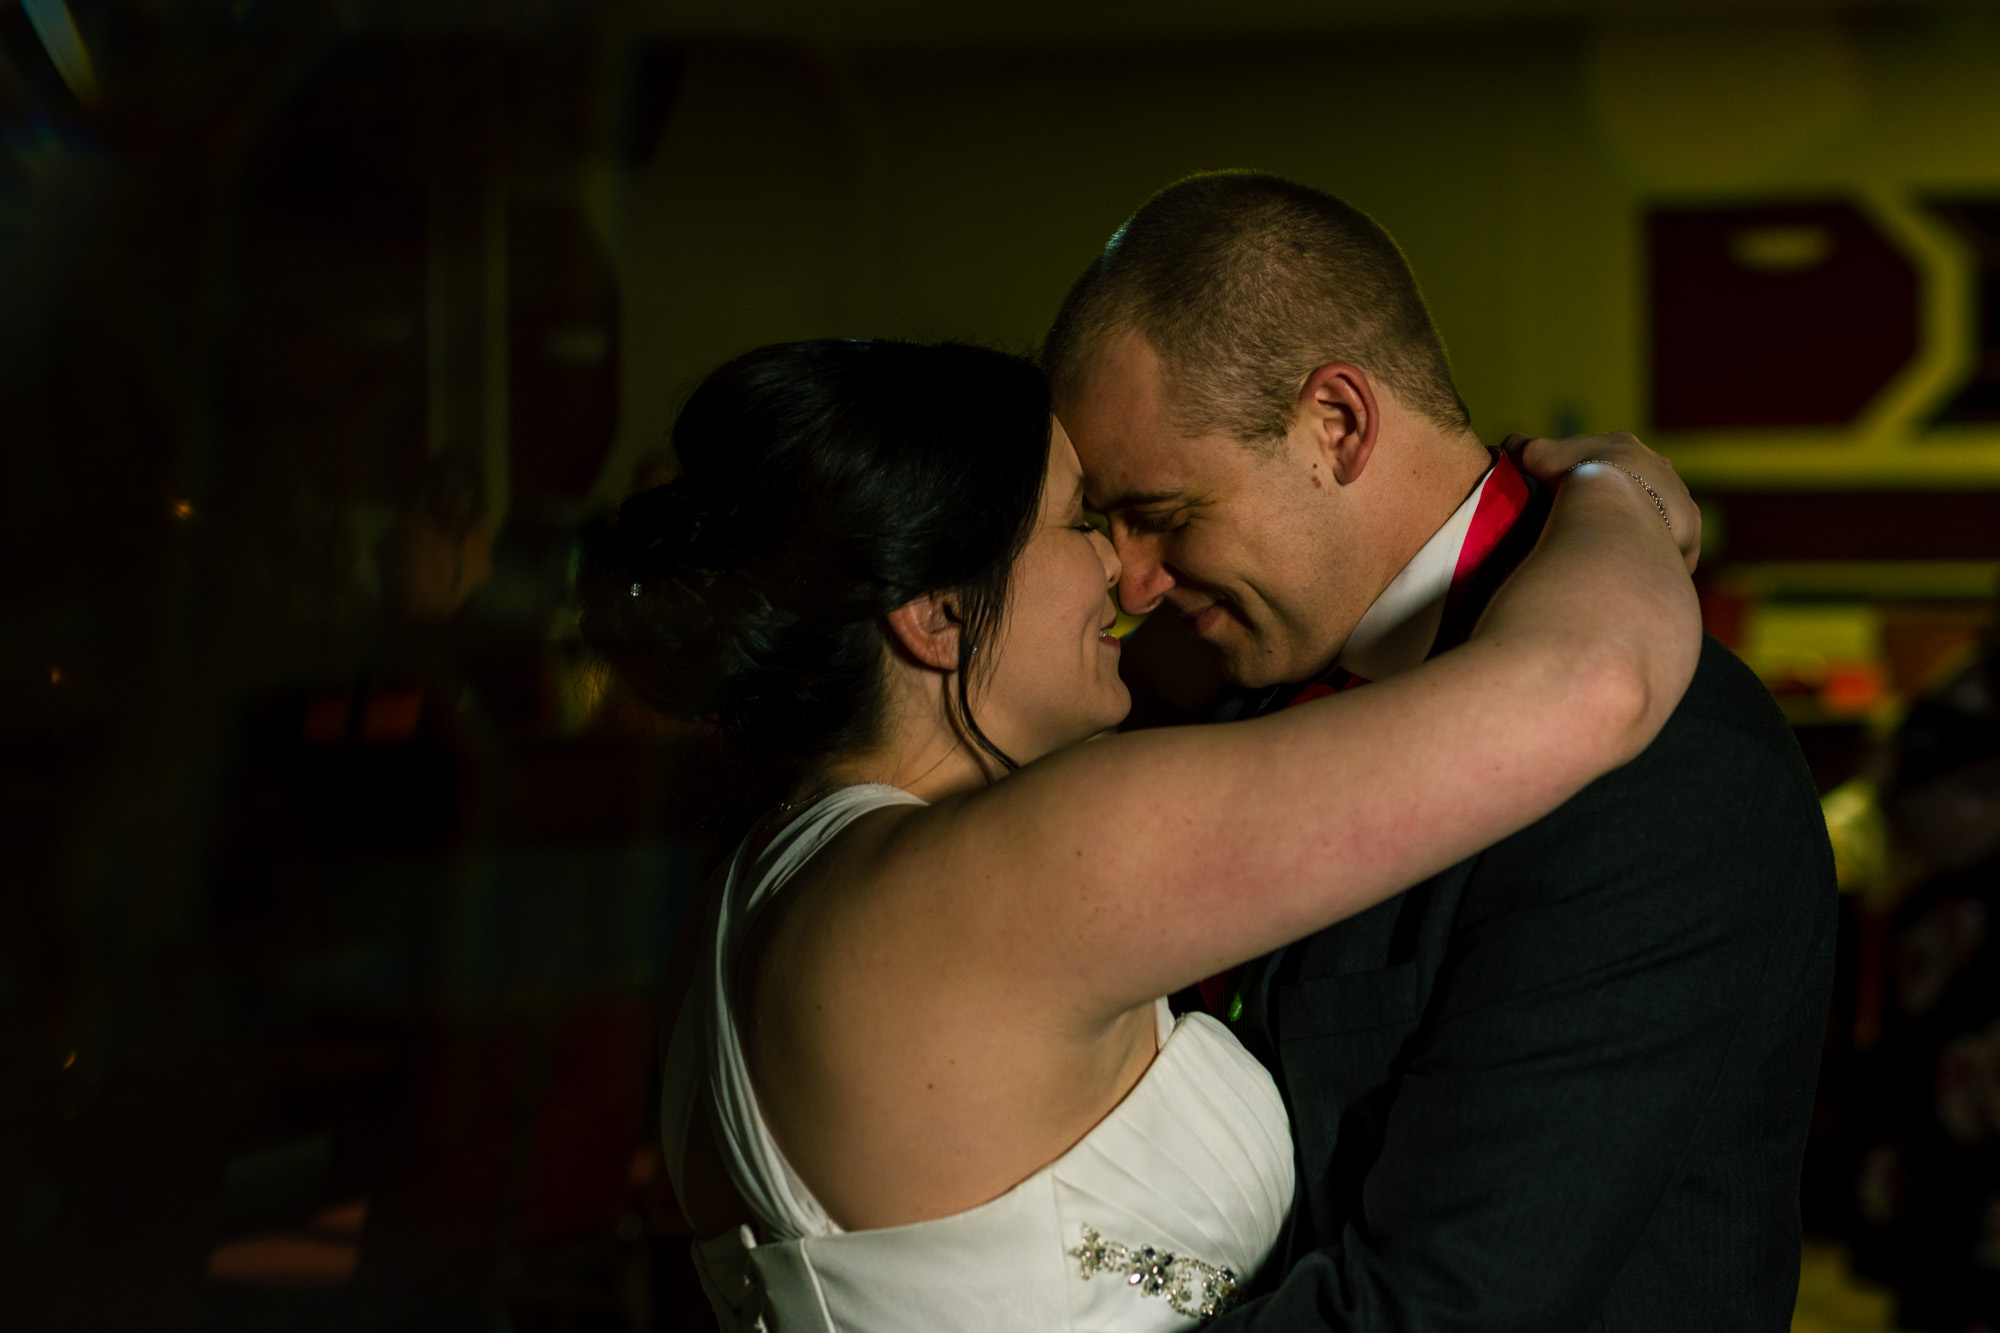 Bride and groom enjoying their first dance. Alone but with everyone around them.